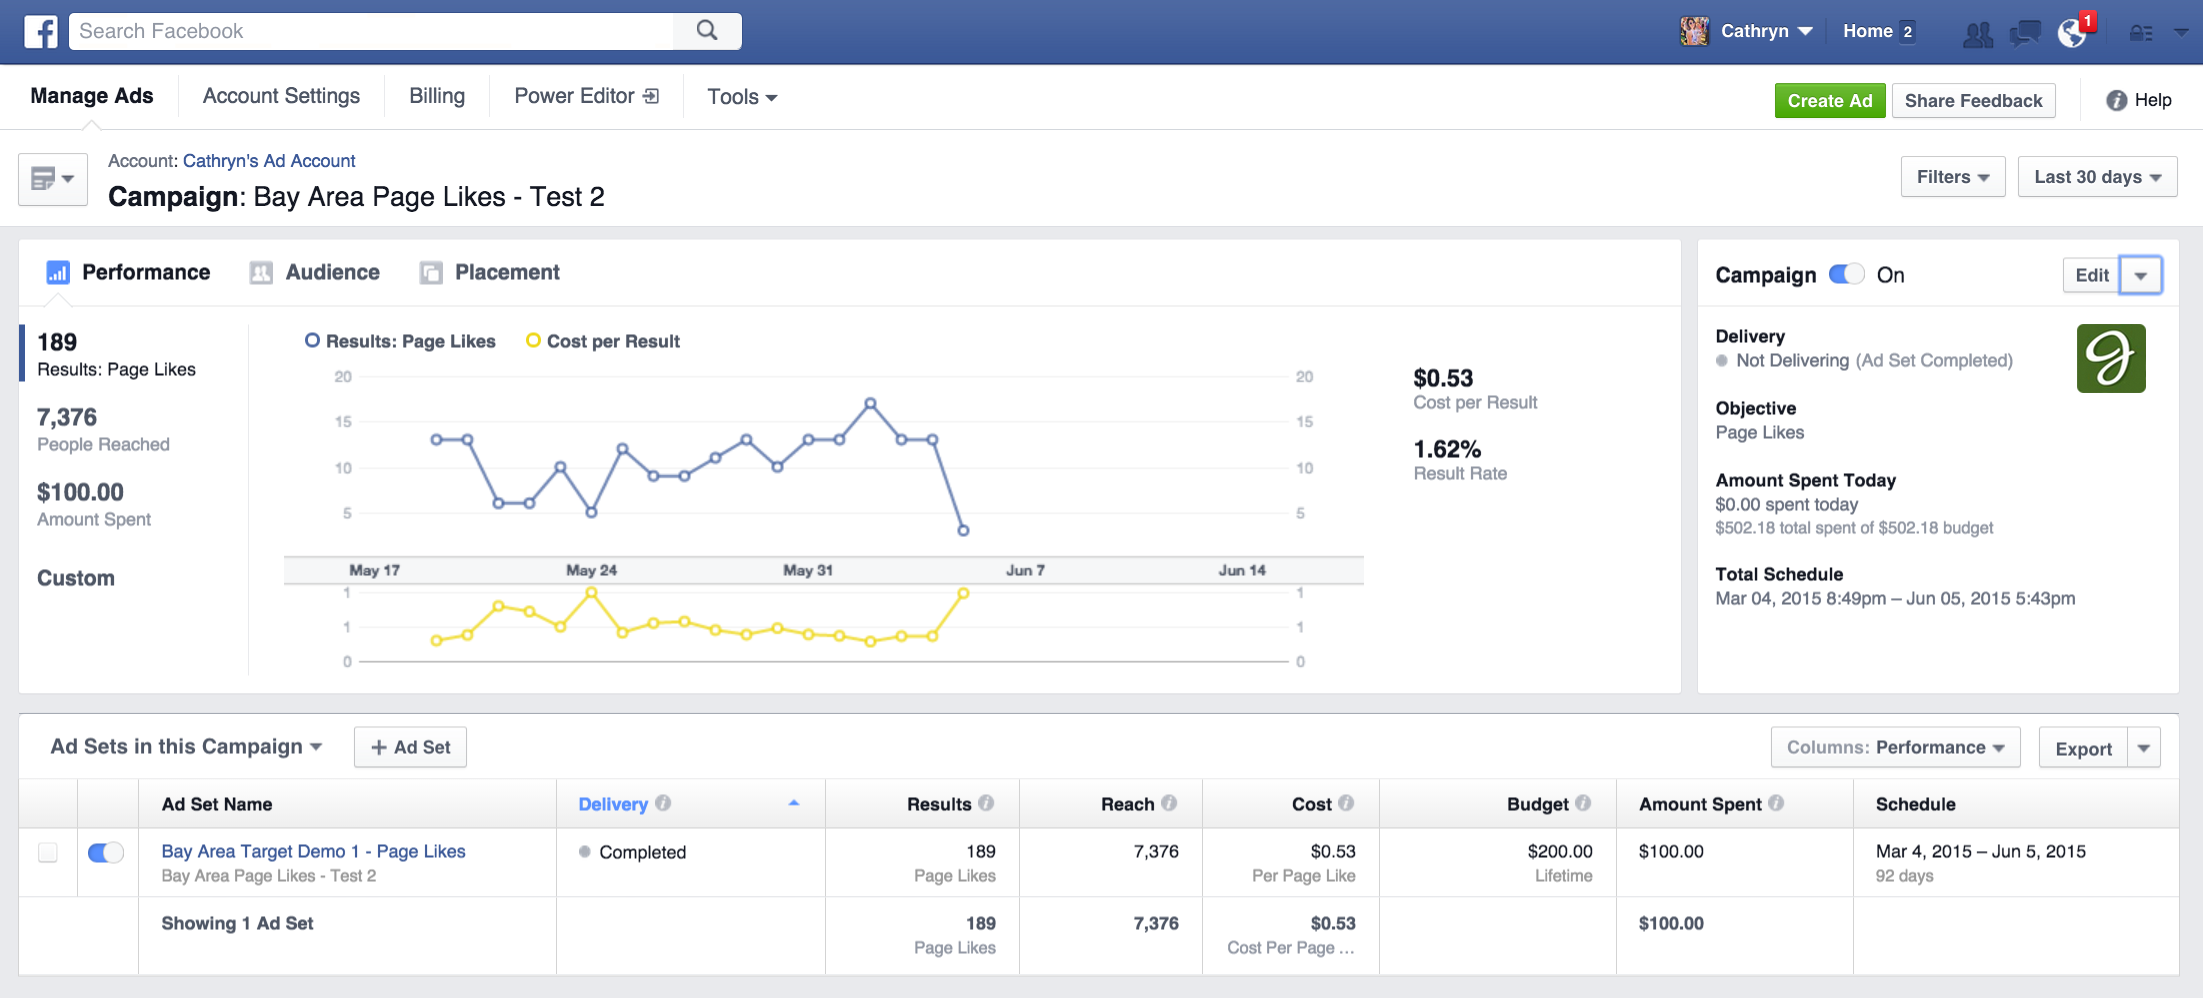 Facebook's Ads Manager -- the new version, as of June 2015.